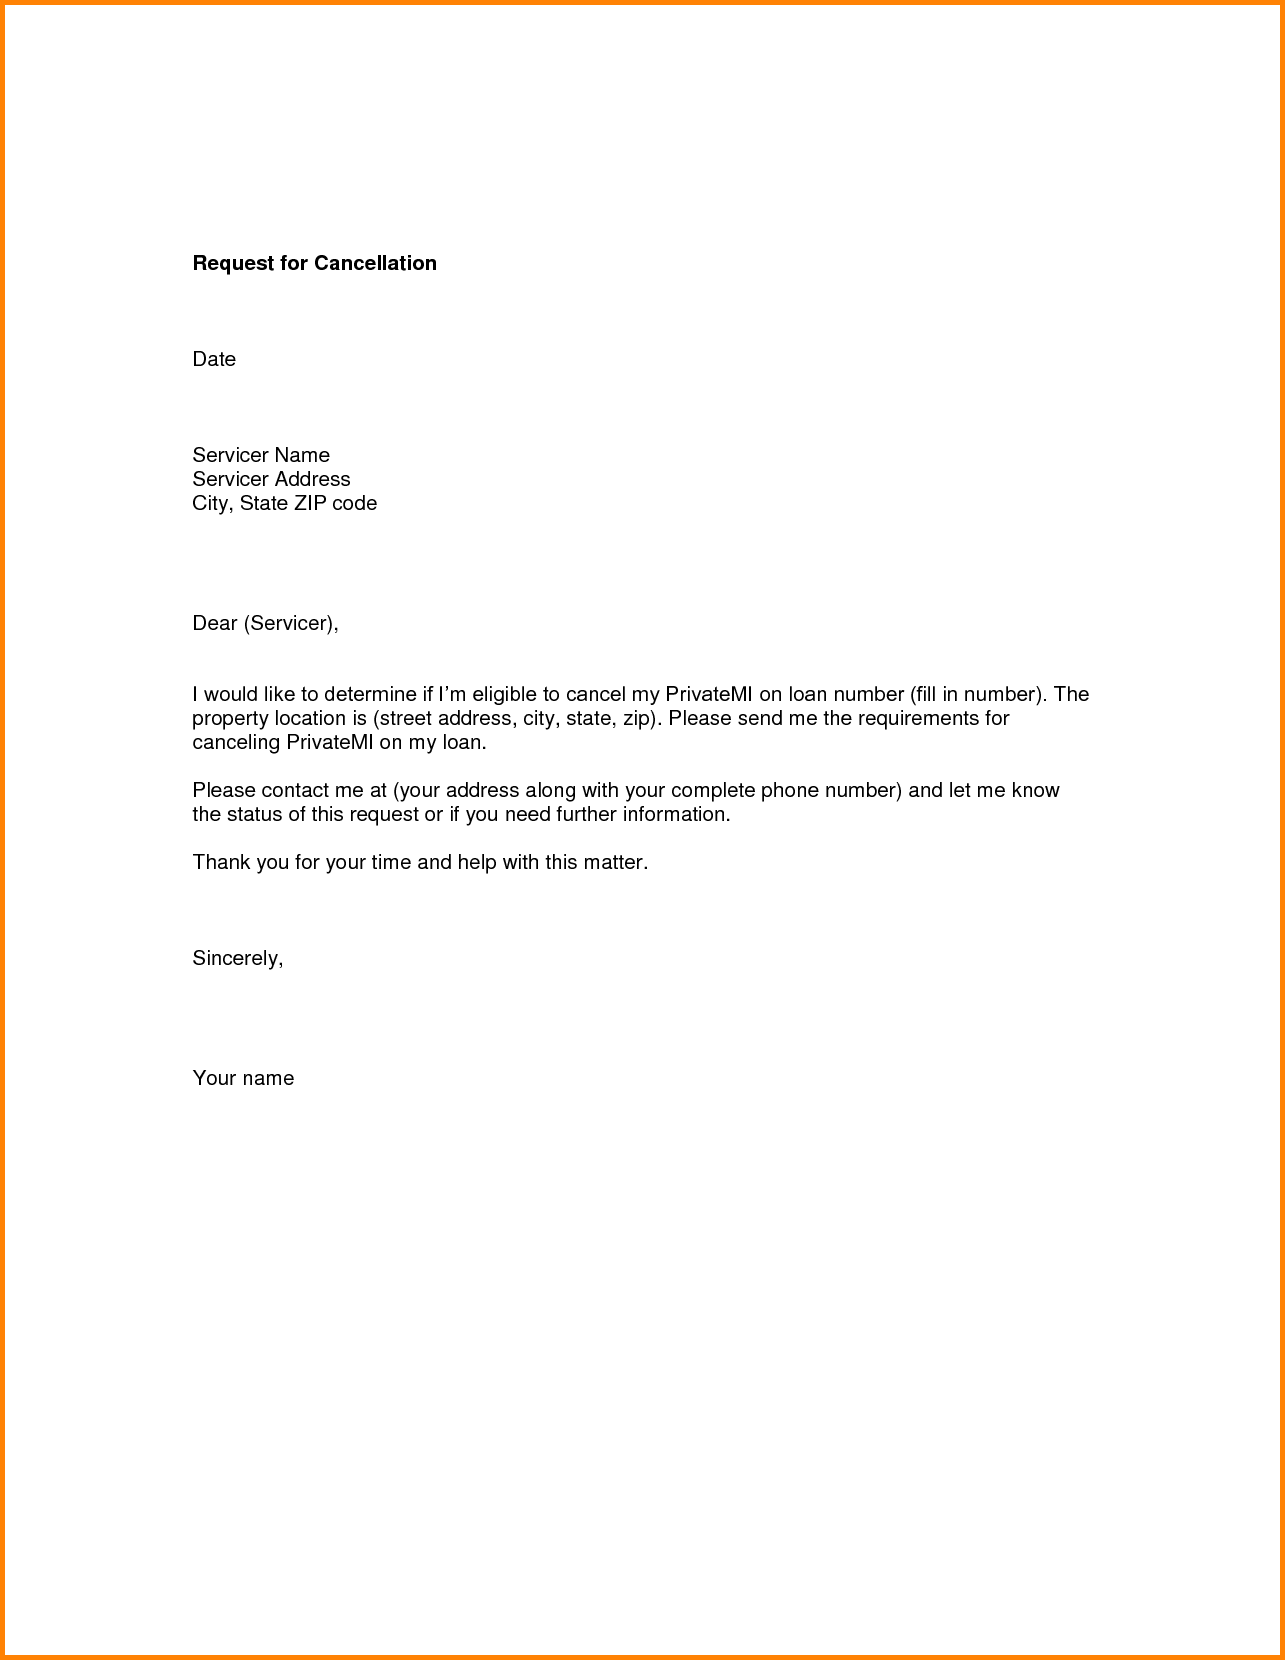 Termination Letter Sample Will Apology The Cancel Meeting Business